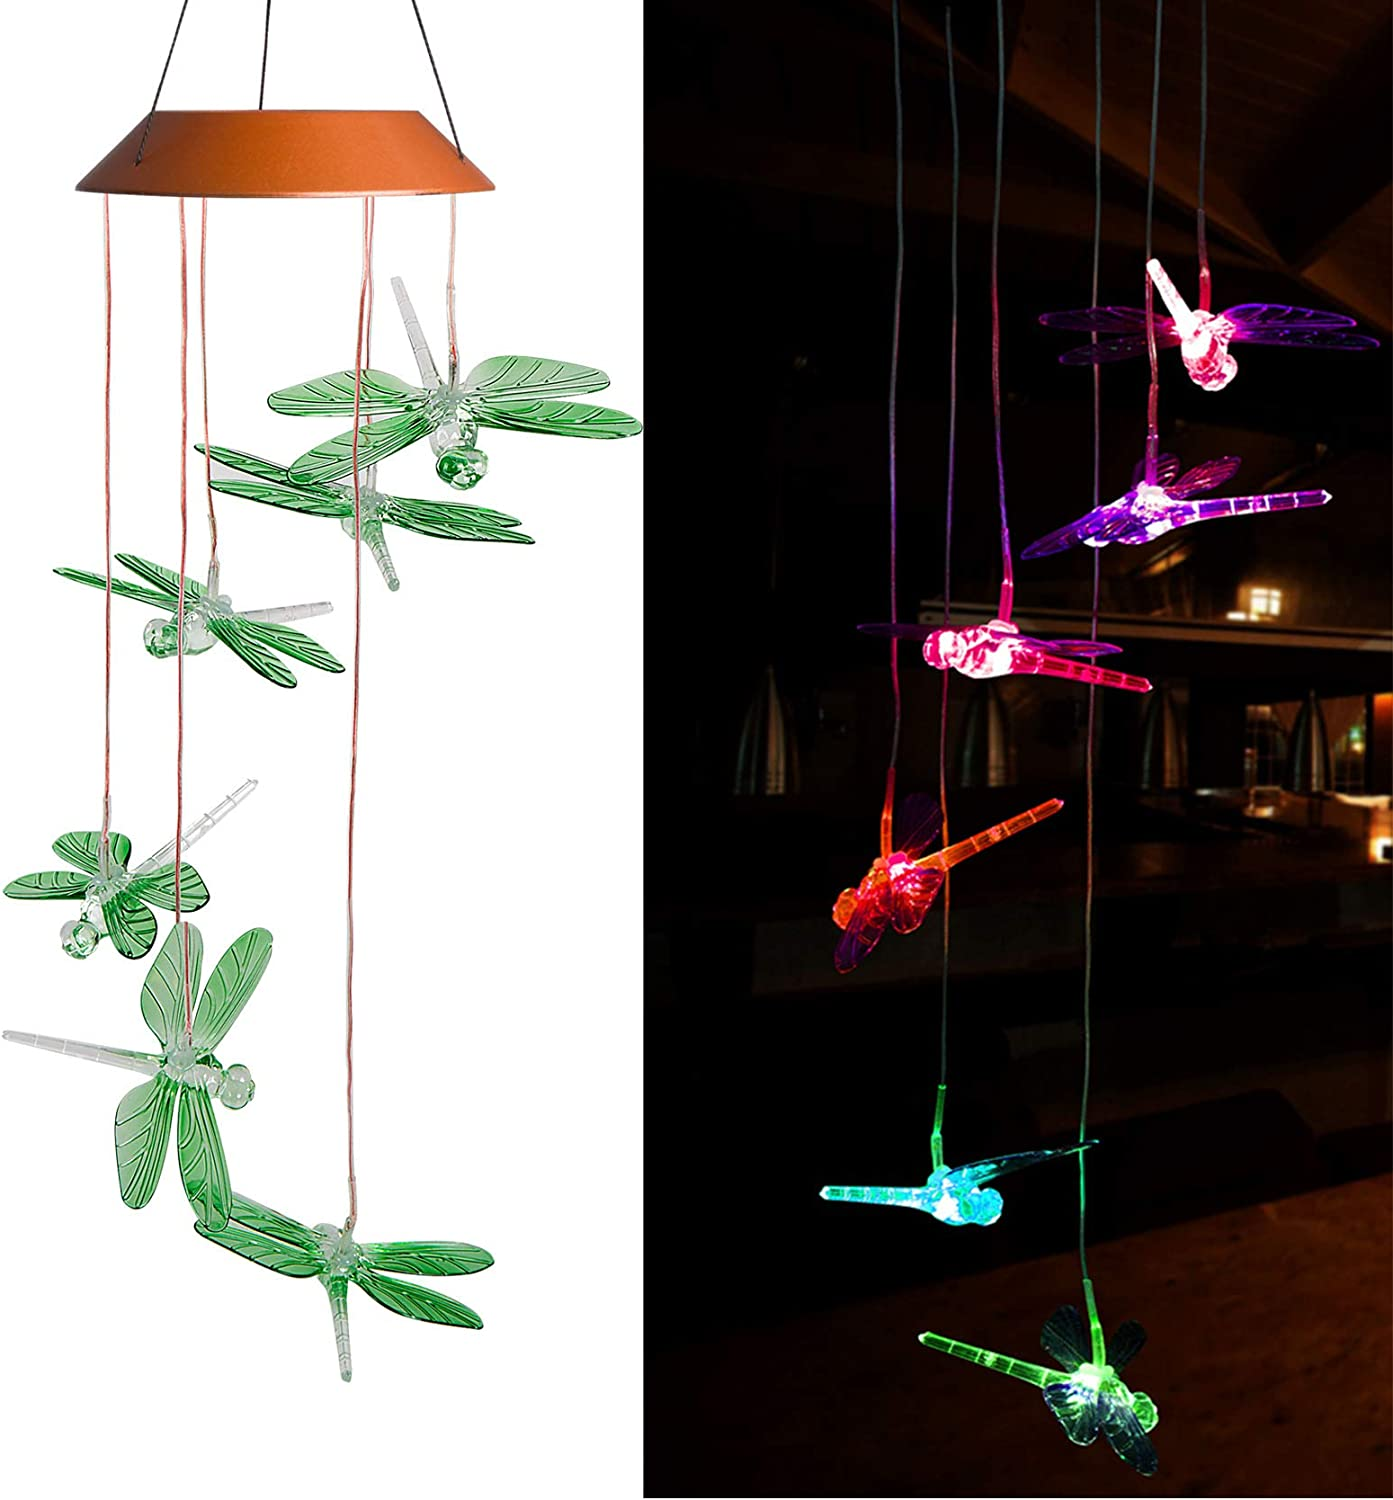 xxschy LED Solar Dragonfly Wind Chimes Outdoor - Waterproof Solar Powered LED Changing Light Color Six Dragonflies Mobile Romantic Wind-Bell for Home, Party, Festival Decor, Night Garden Decoration